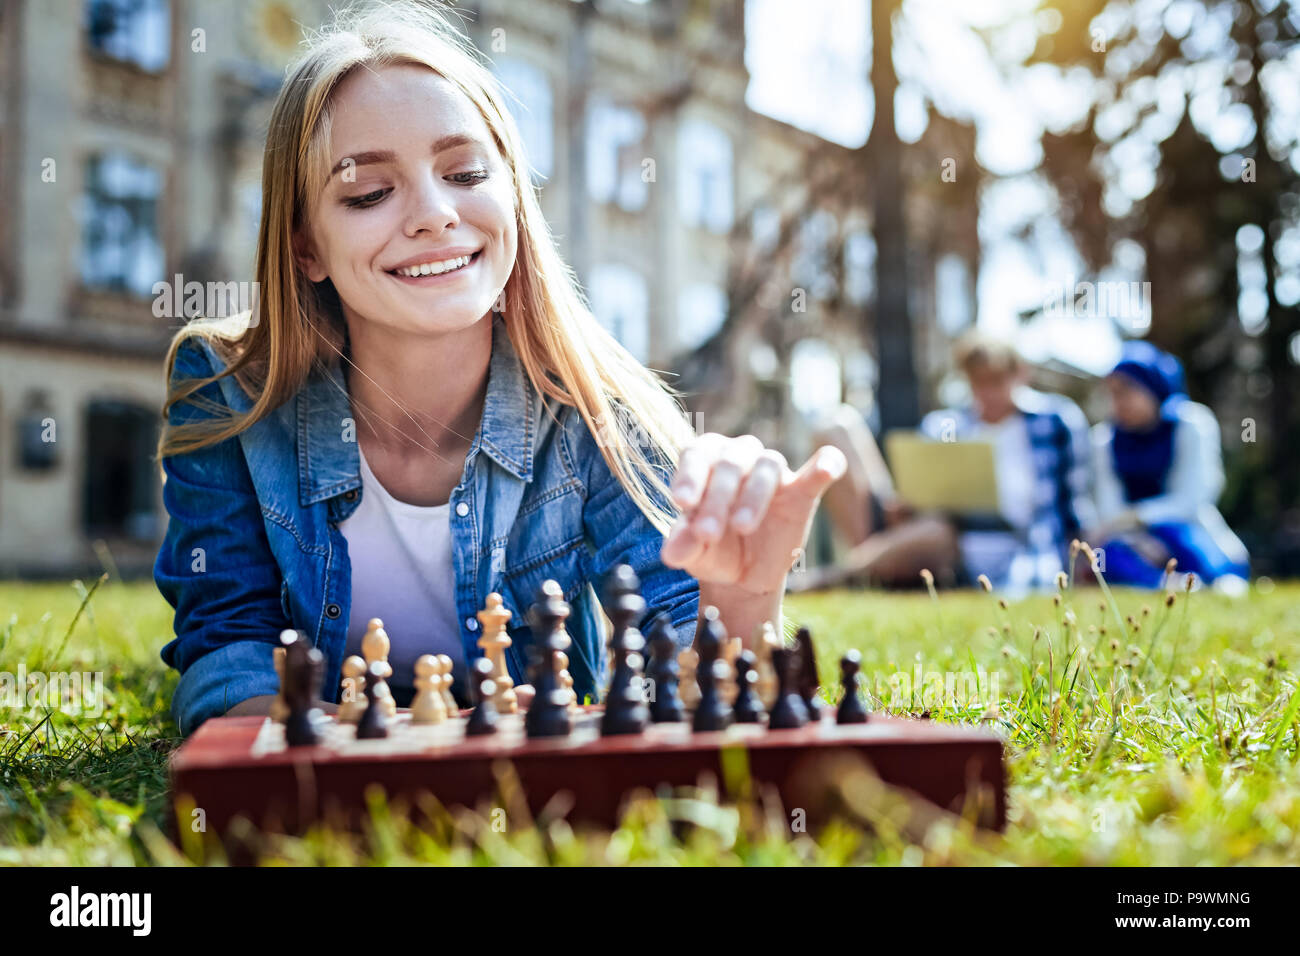 Smart young lady smiling while playing chess - Stock Image